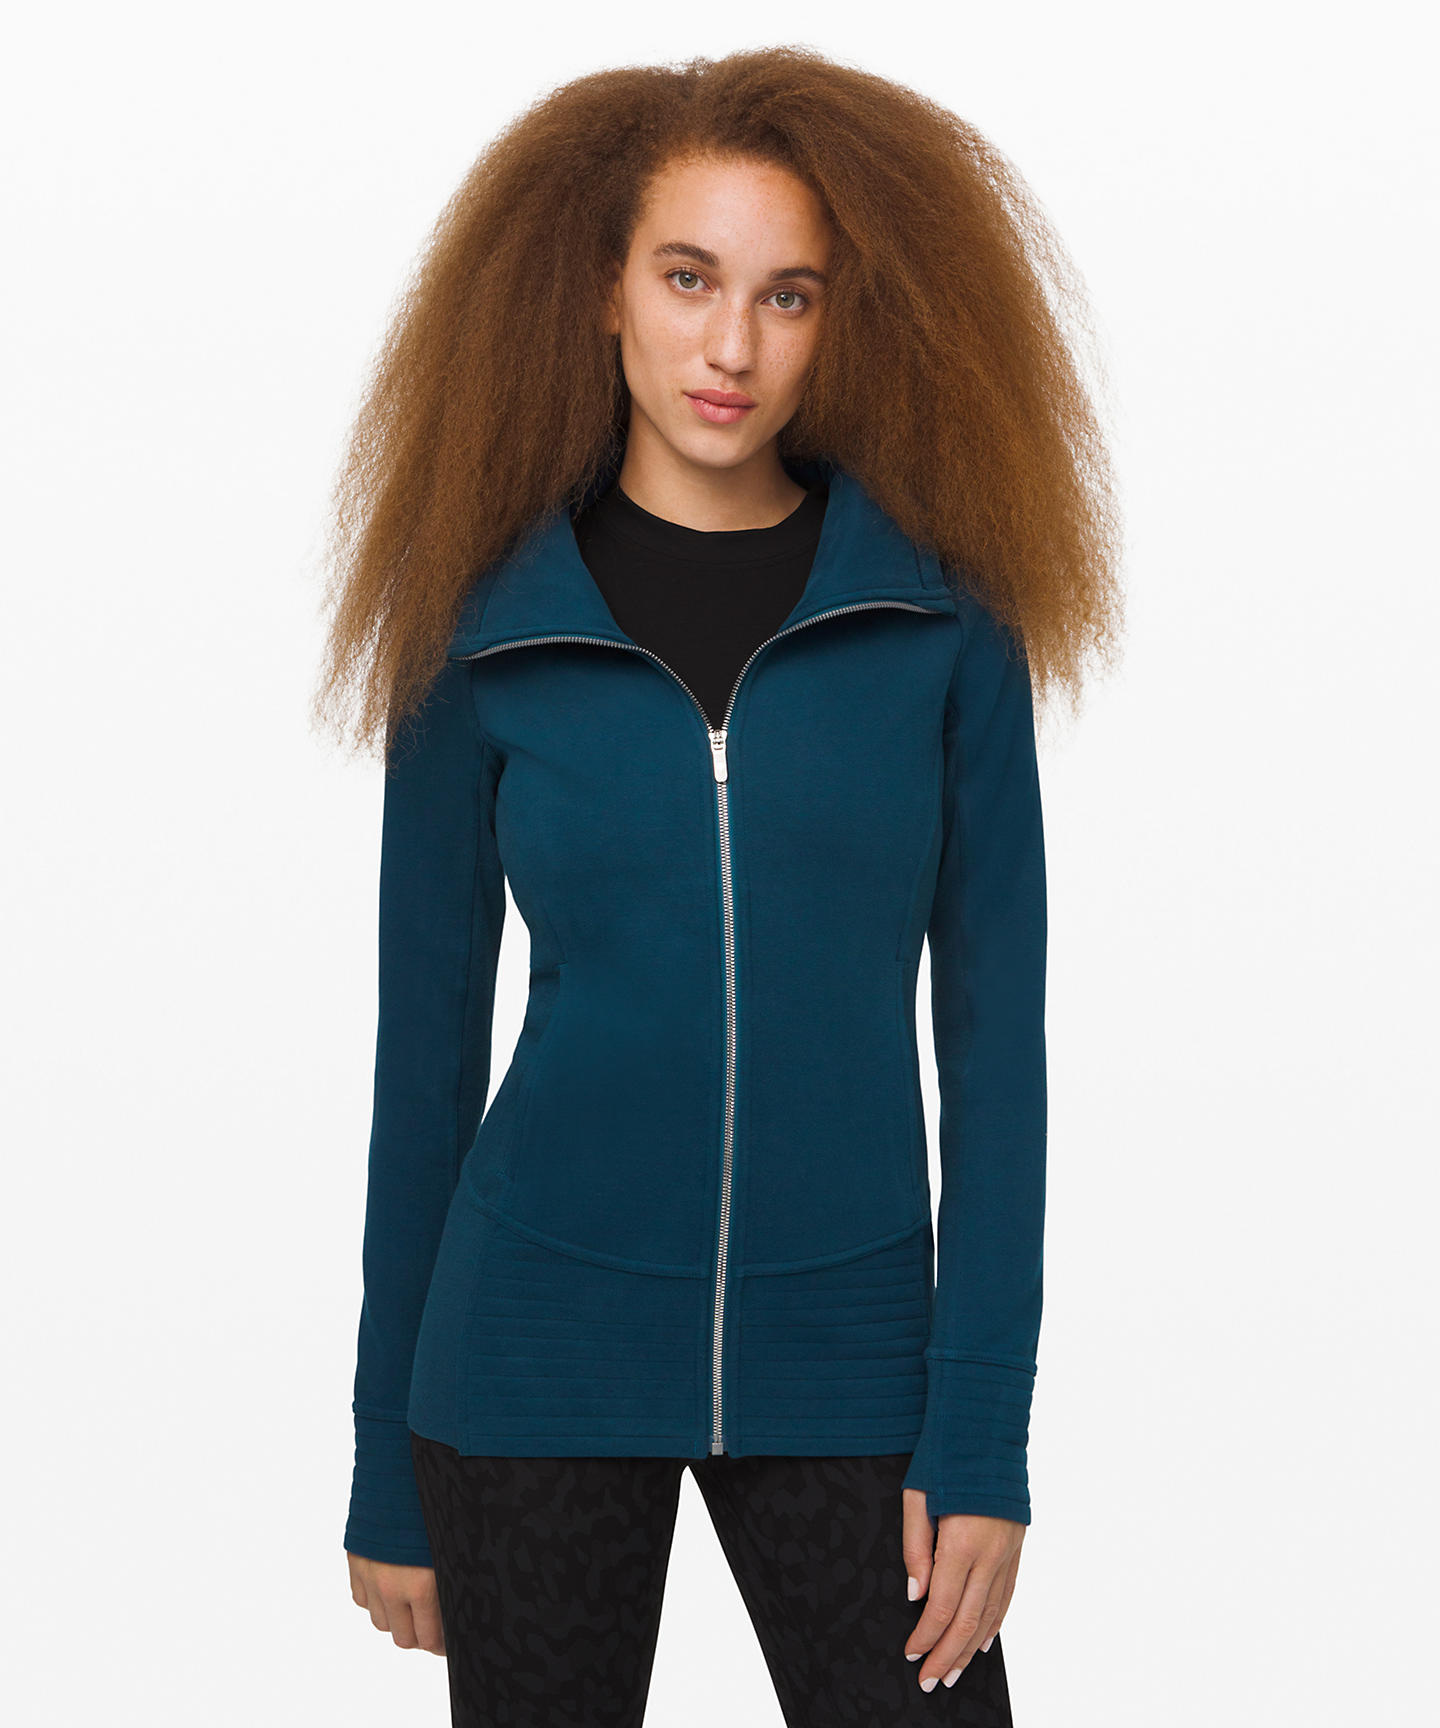 Radiant Jacket, Lululemon Holiday Uploads